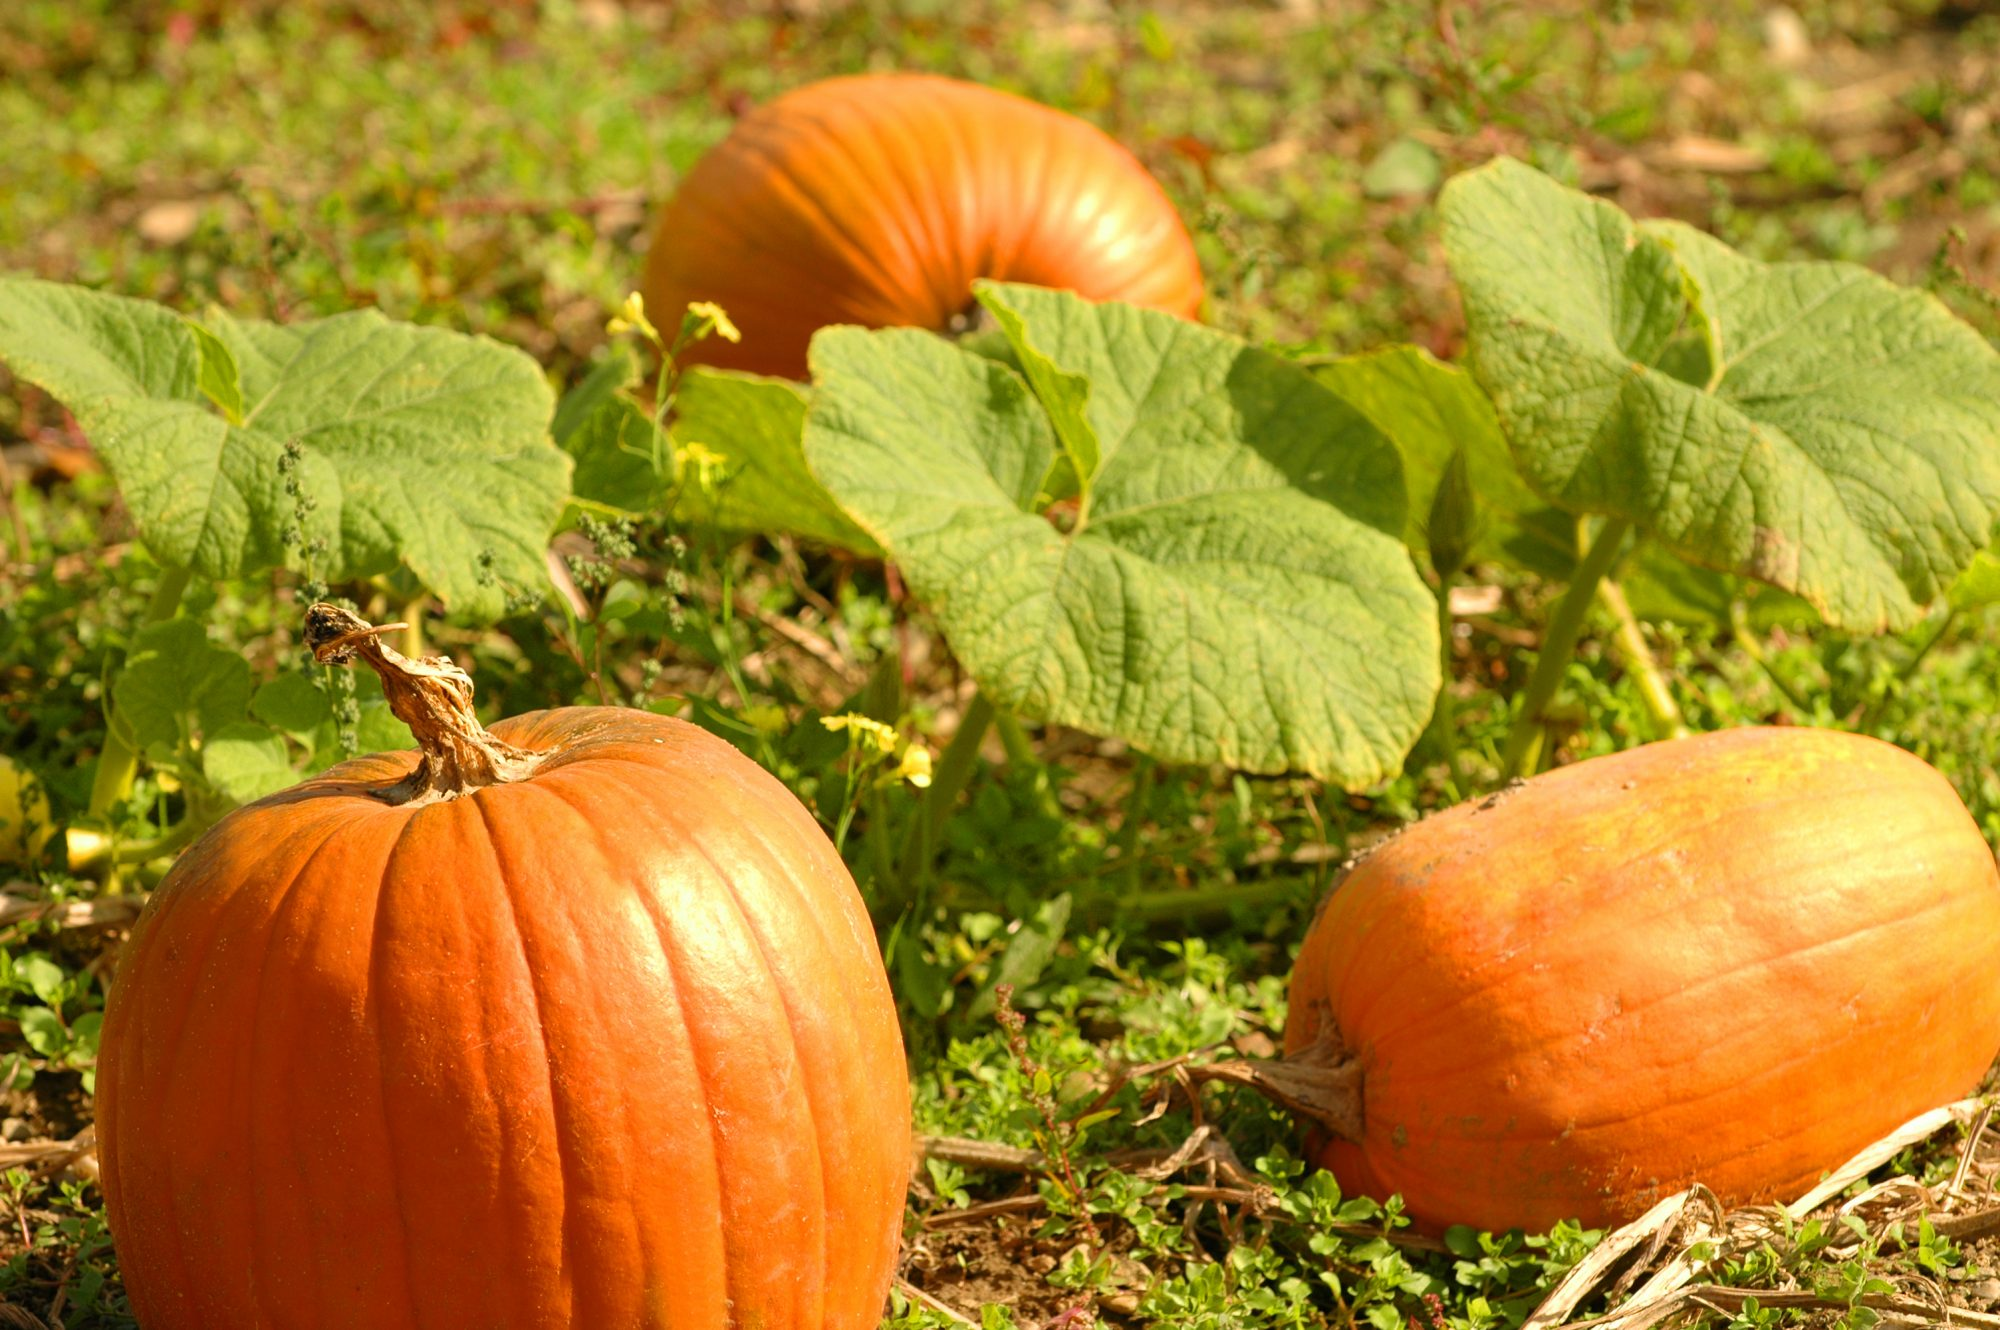 Pumpkins Growing in Field